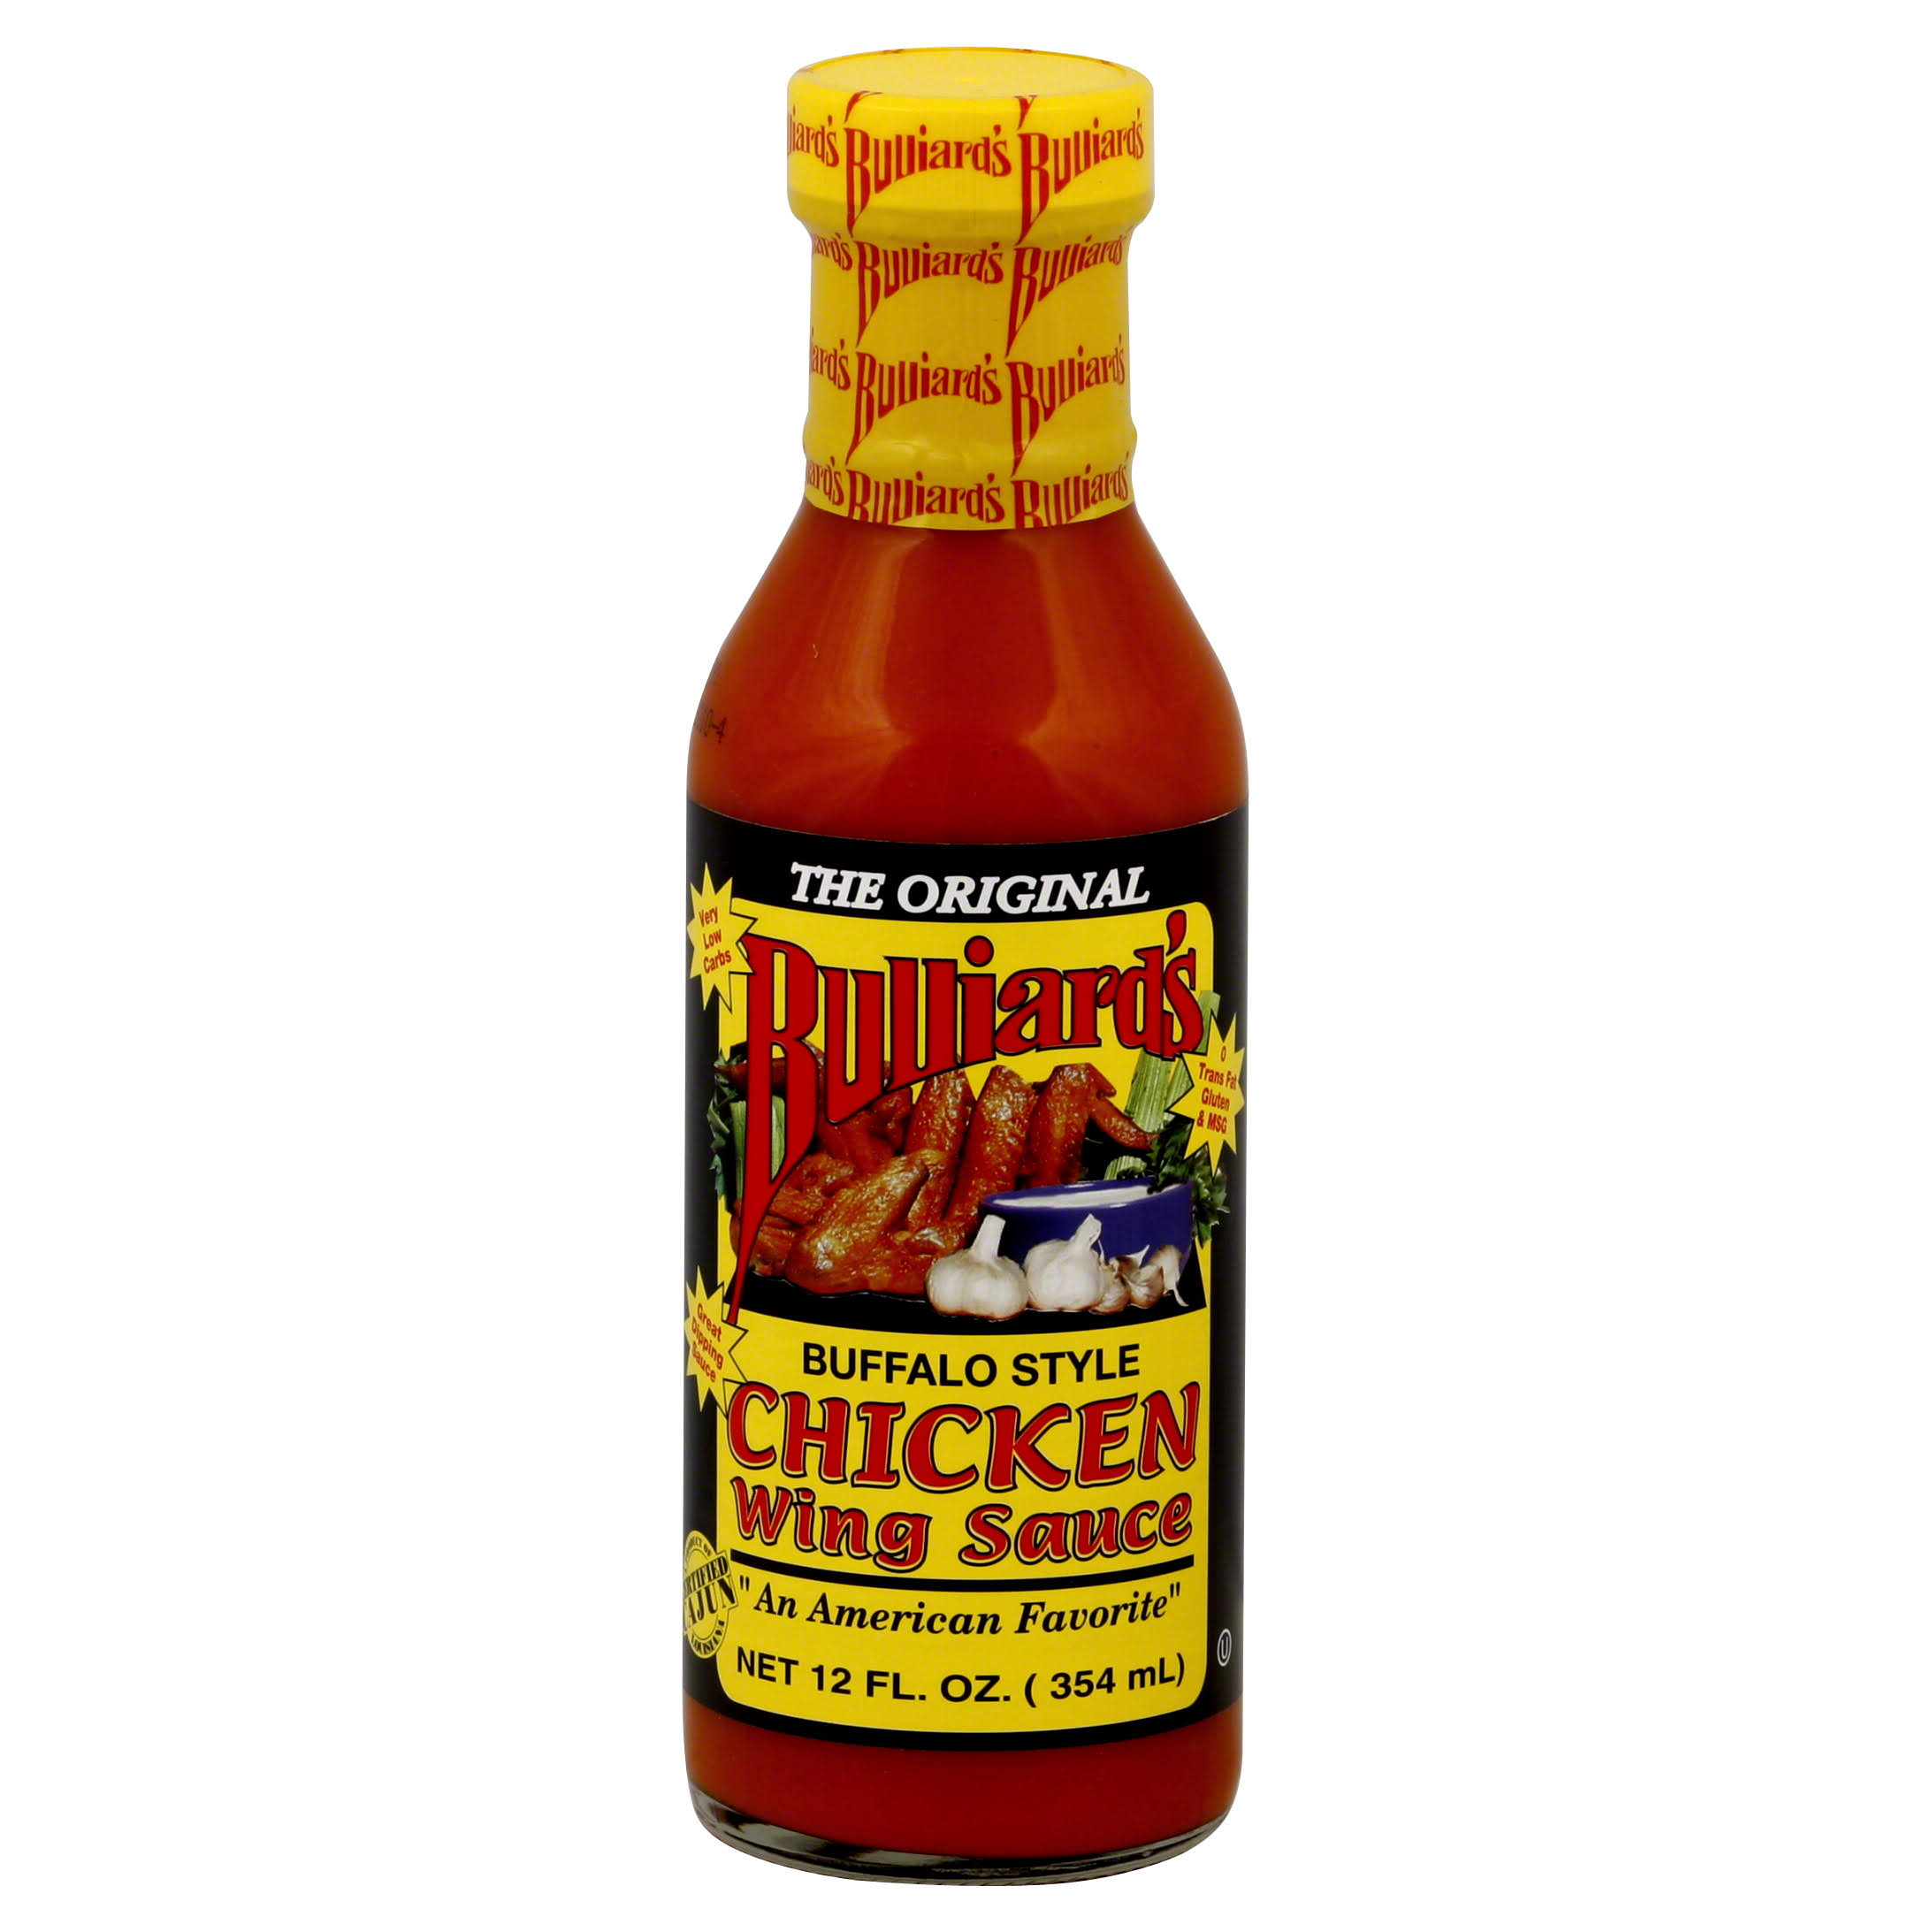 Bulliards Sauce, Chicken Wing, Buffalo Style - 12 fl oz